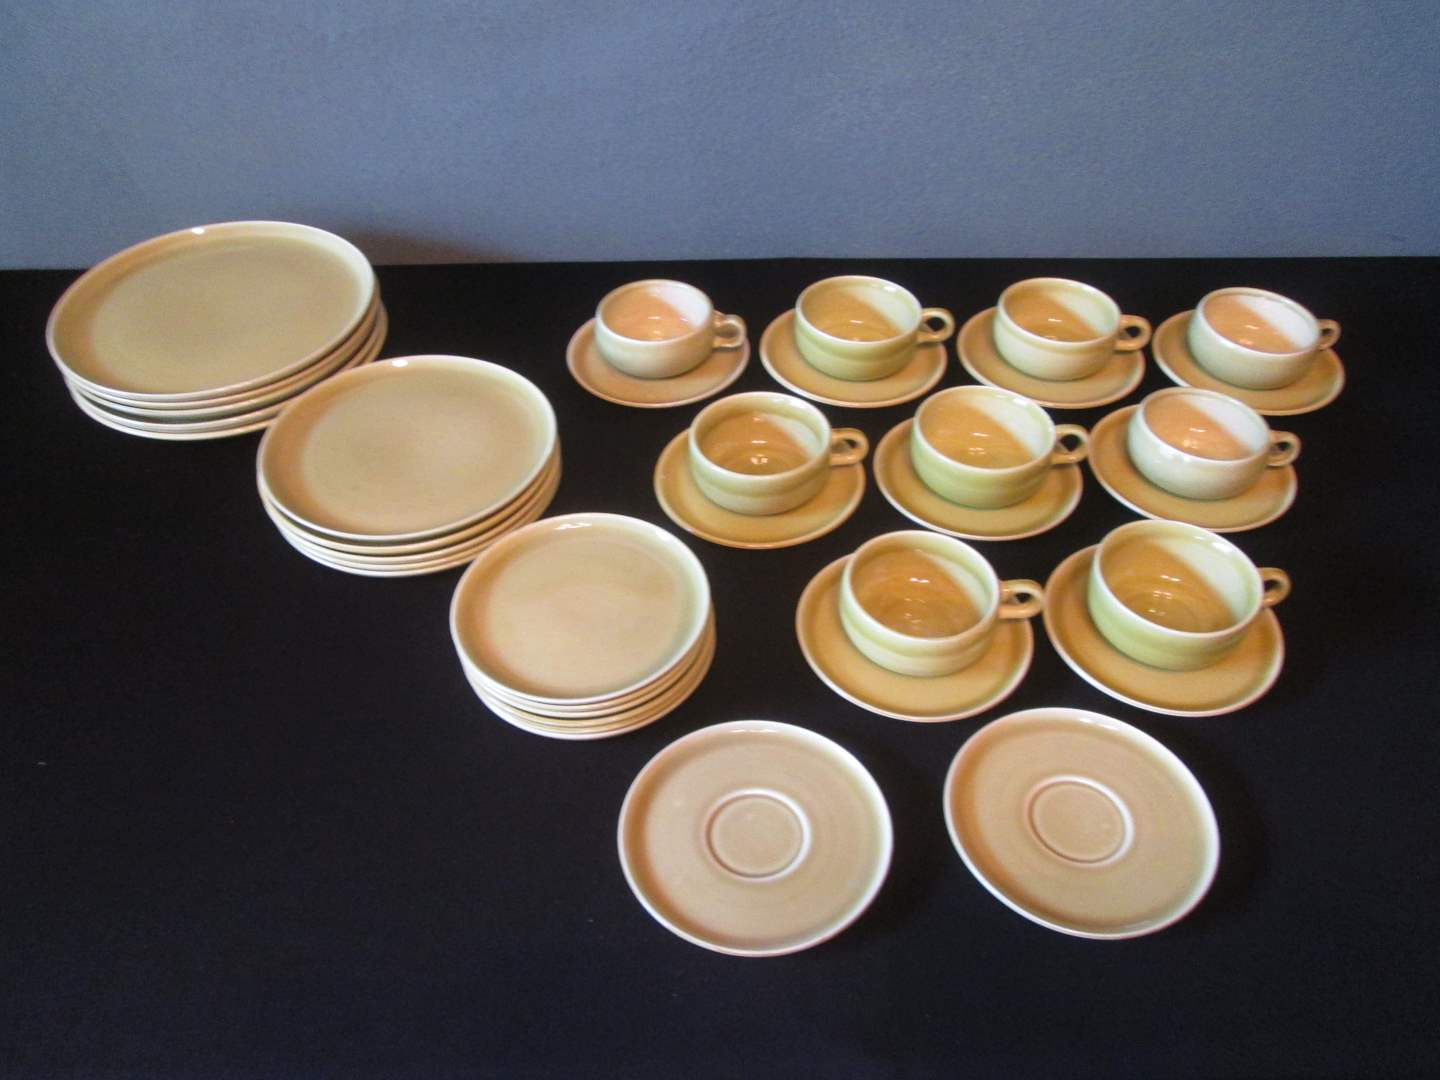 Lot # 226 - MCM Russel Wright China, Chartreuse, 36 pieces (main image)